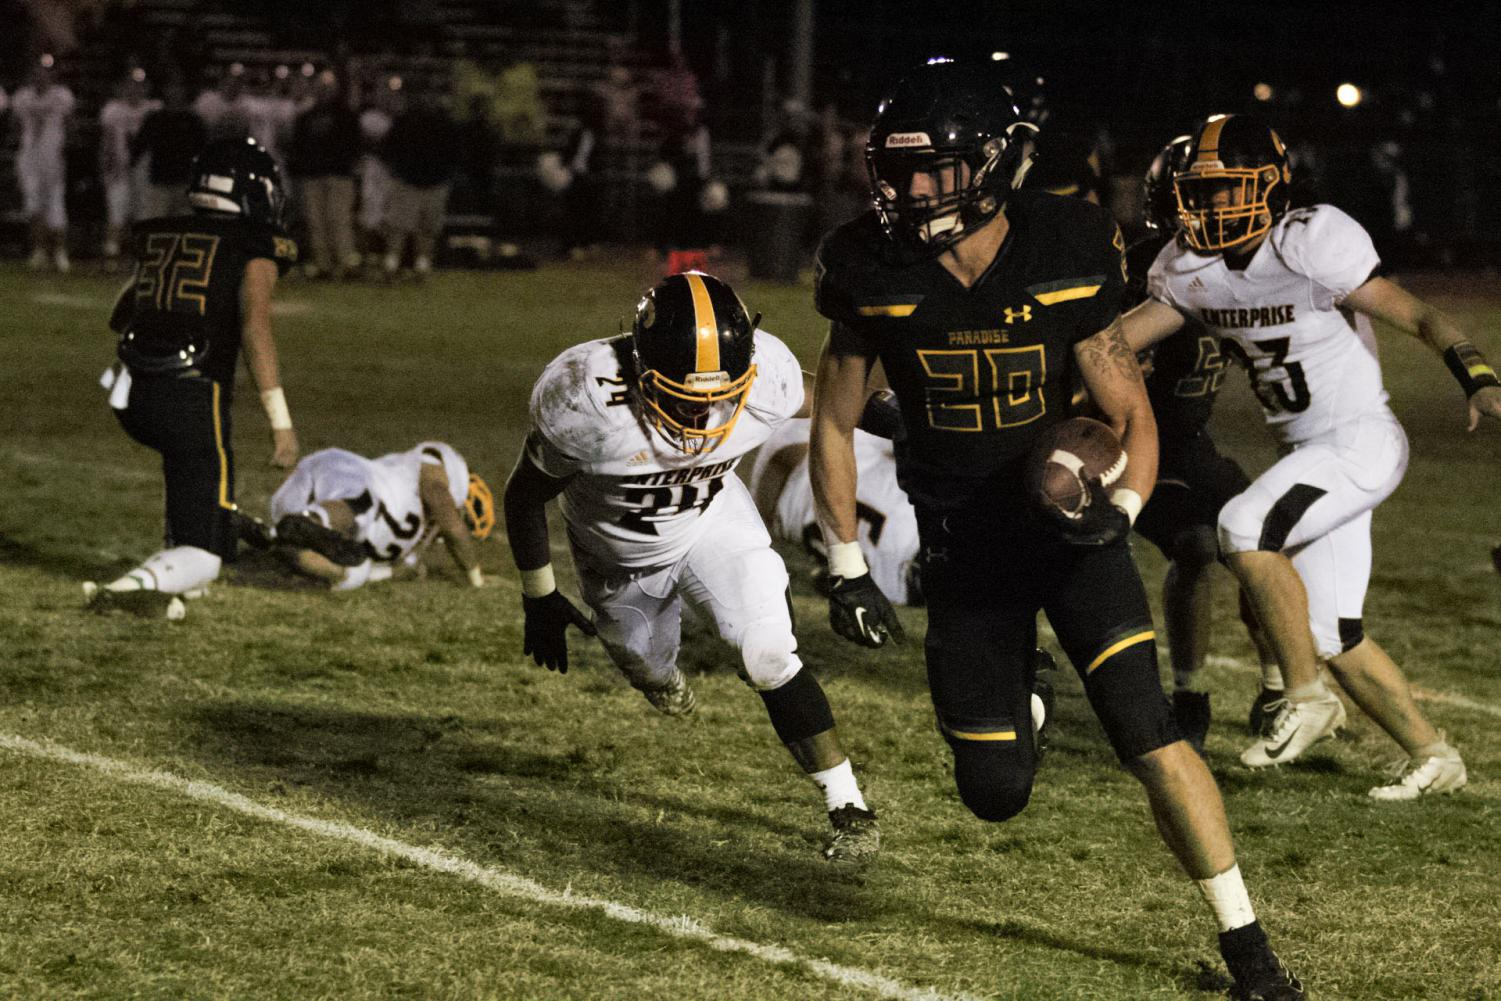 Lukas Hartley running for eventual touchdown. Photo credit: Wesley Harris